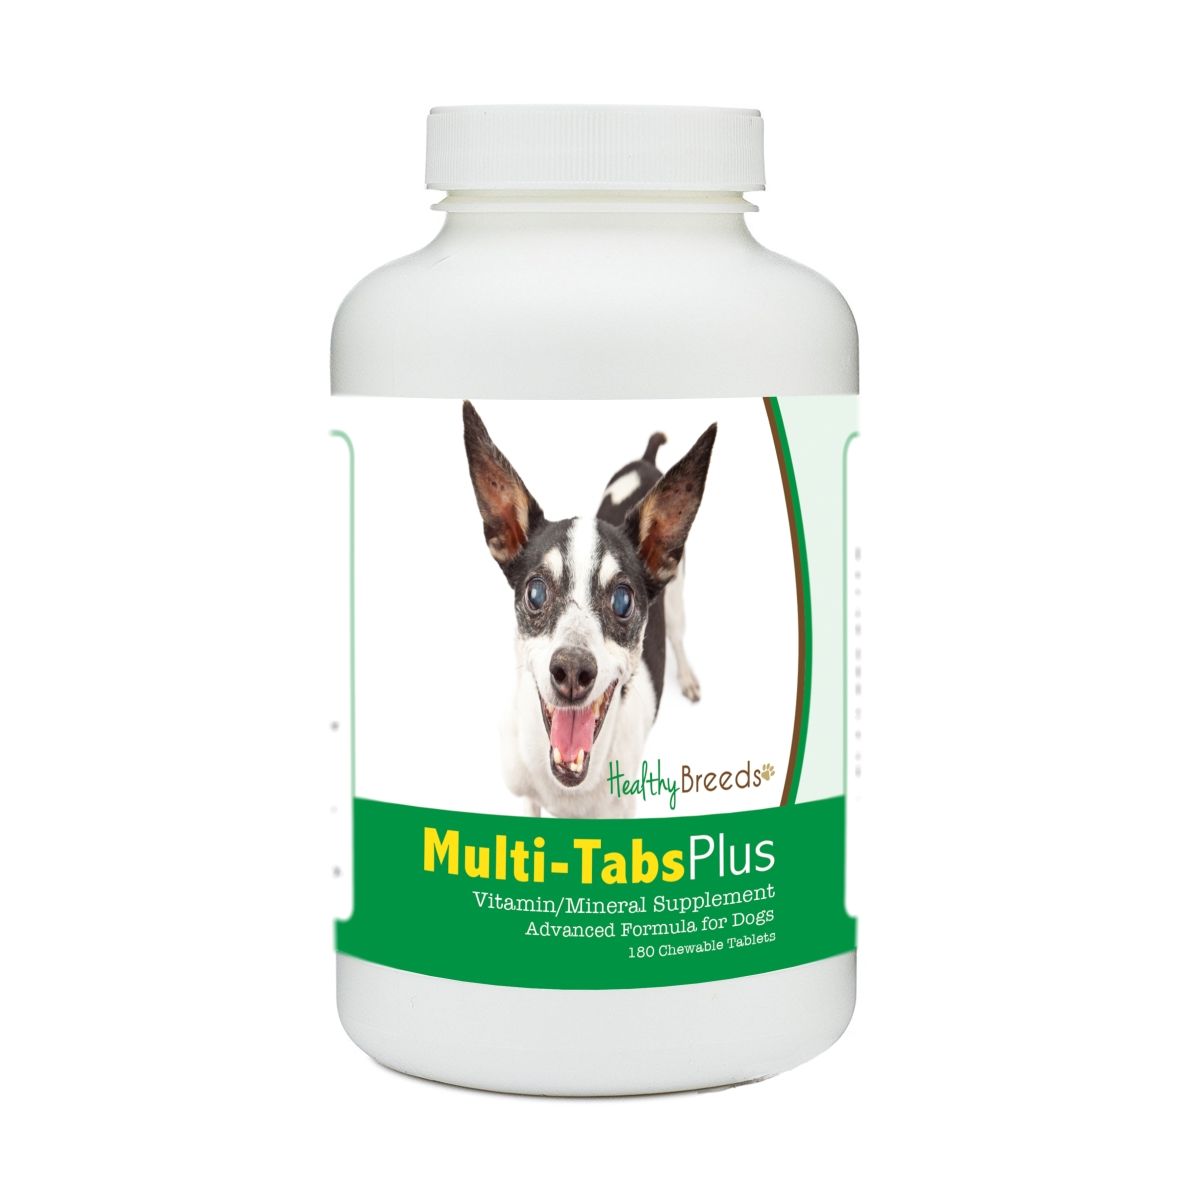 Healthy Breeds 840235181026 Rat Terrier Multi-Tabs Plus Chewable Tablets - 180 Count